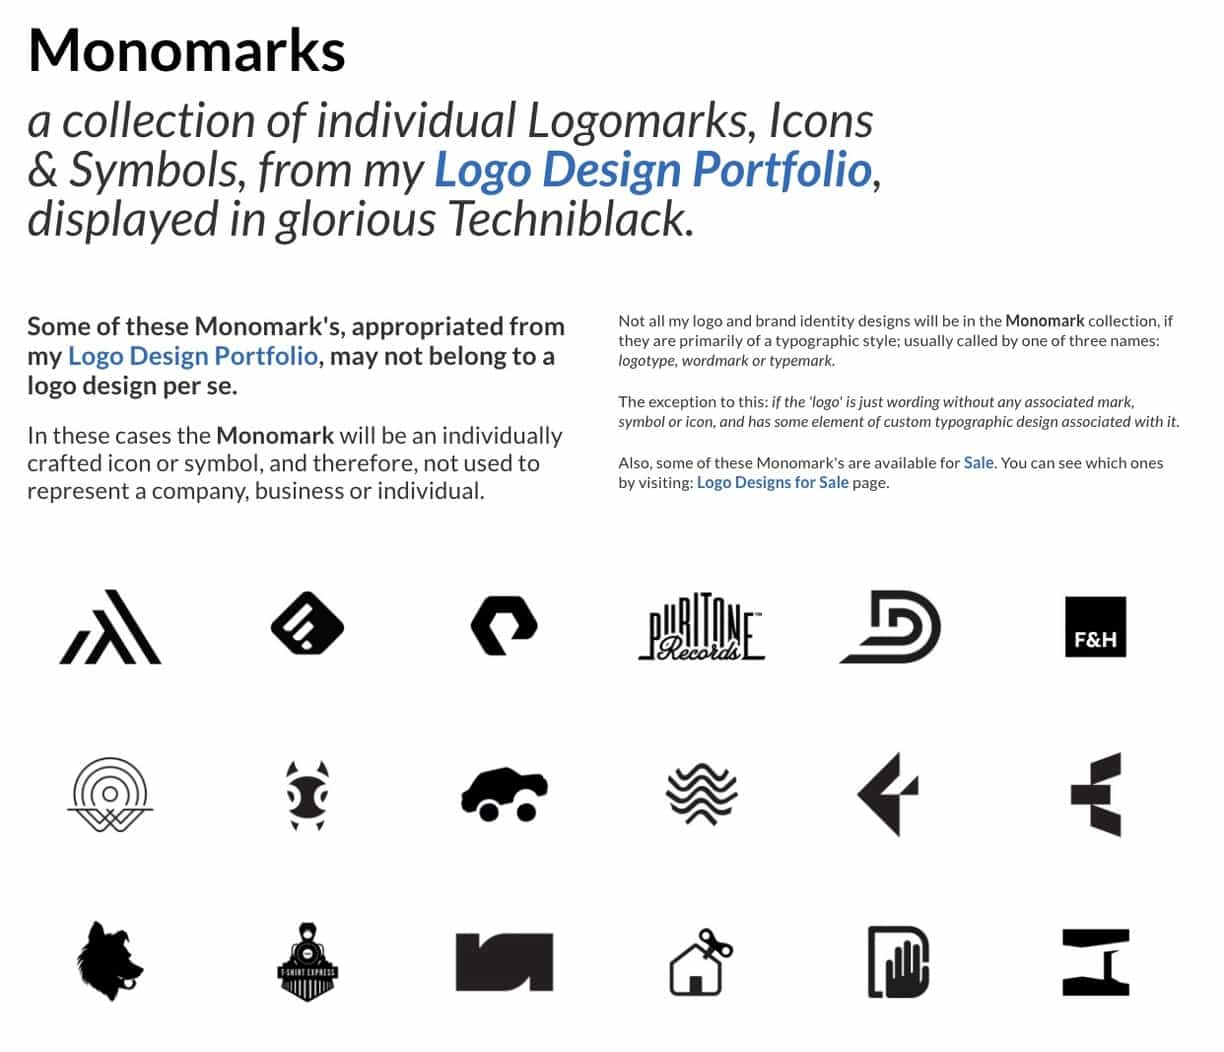 Monomarks a collection of individual Logomarks and Logo Designs